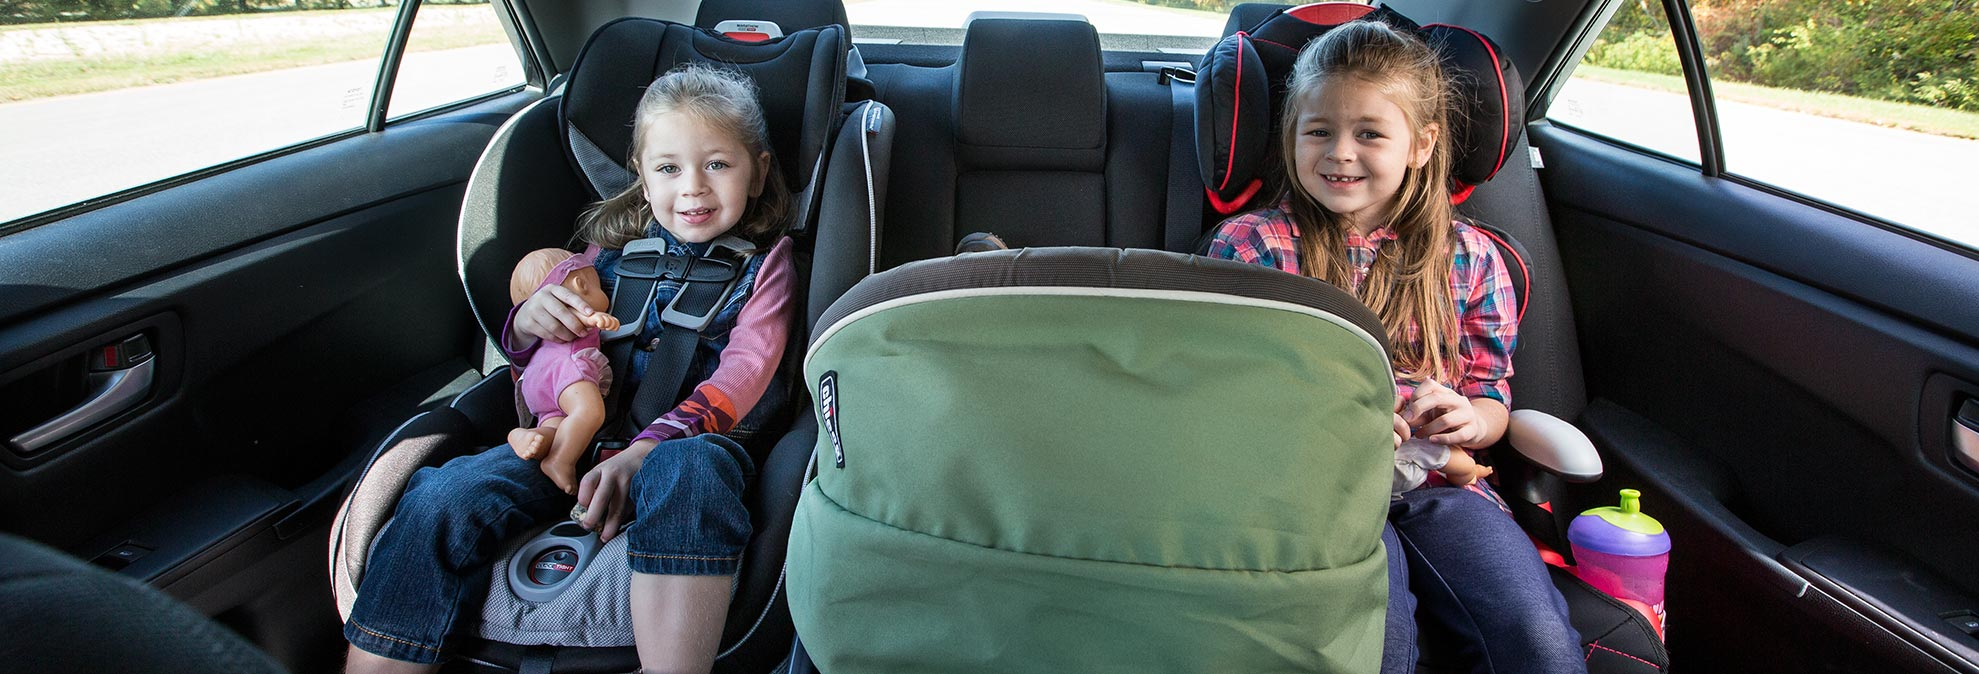 How to Fit Car Seats Three Across - Consumer Reports